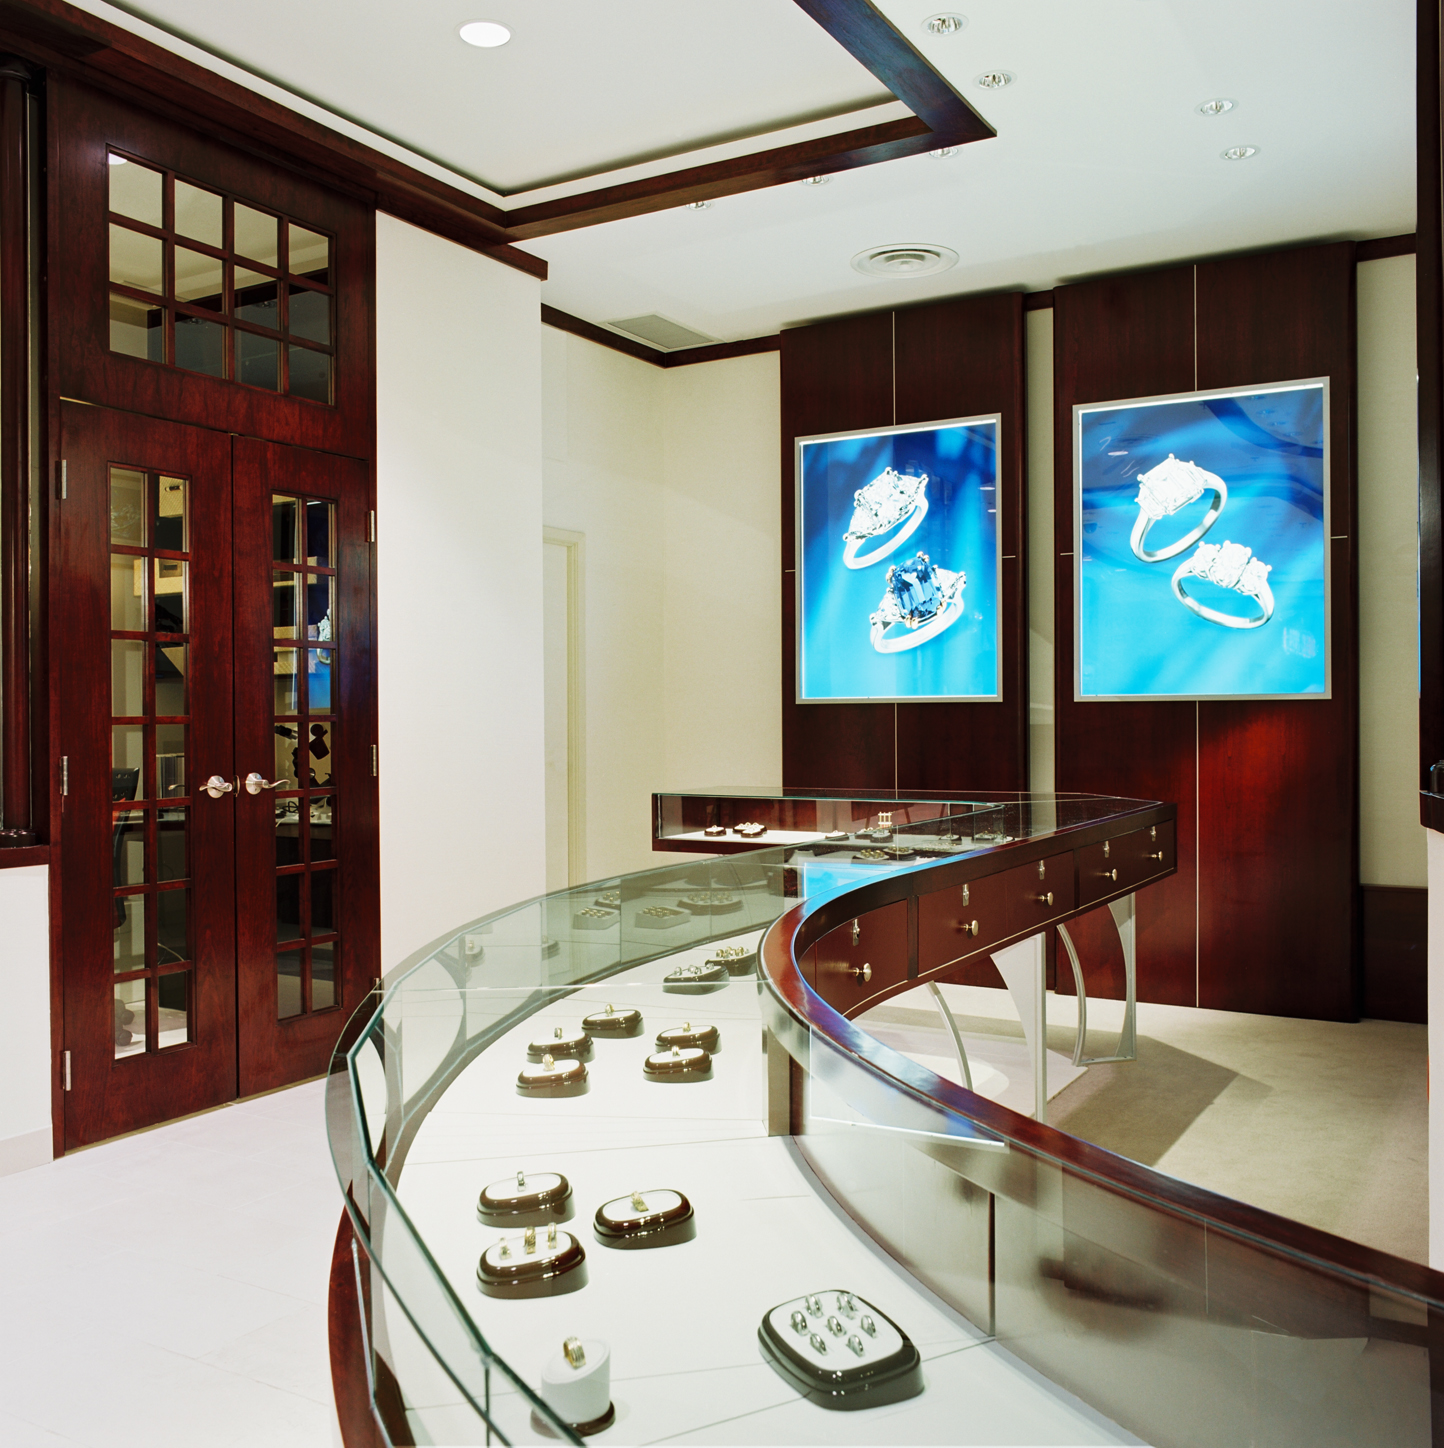 Marshman Jewellers, Jewellery Store, Custom Showcase, Lighting Design, Modern, C